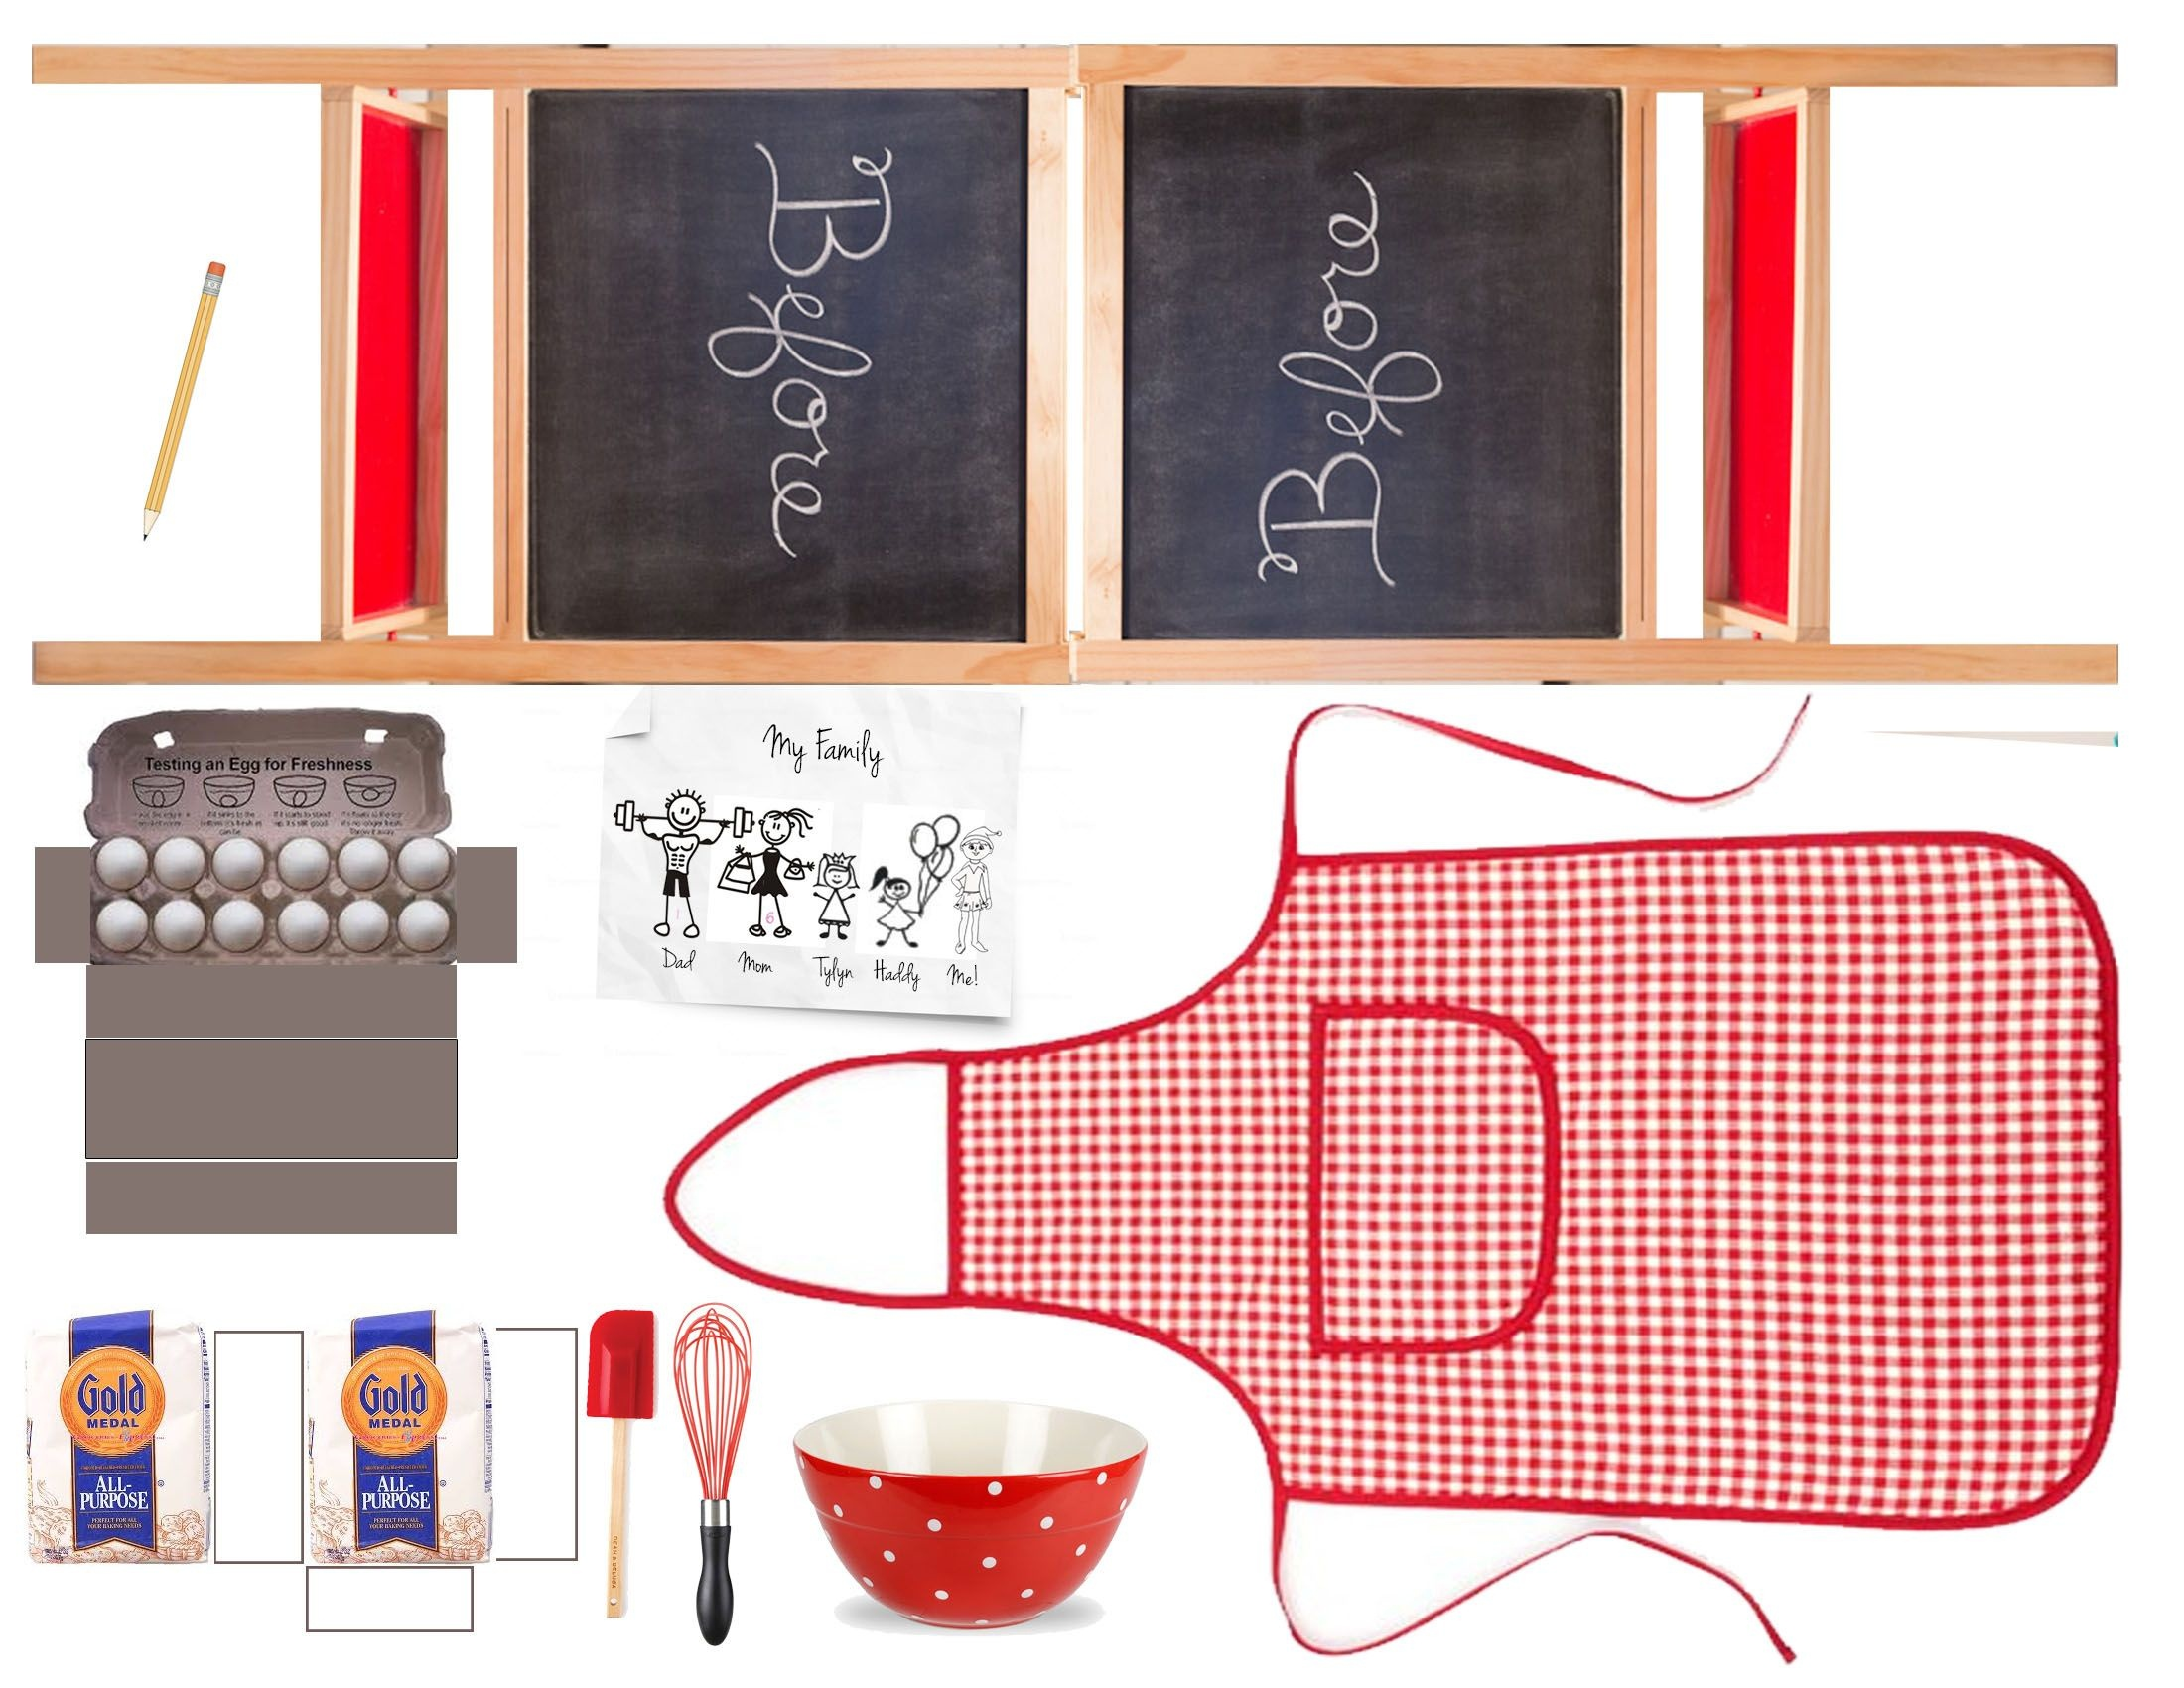 Elf On The Shelf Free Printable Props | Christmas | Elf On Shelf - Elf On The Shelf Free Printable Props